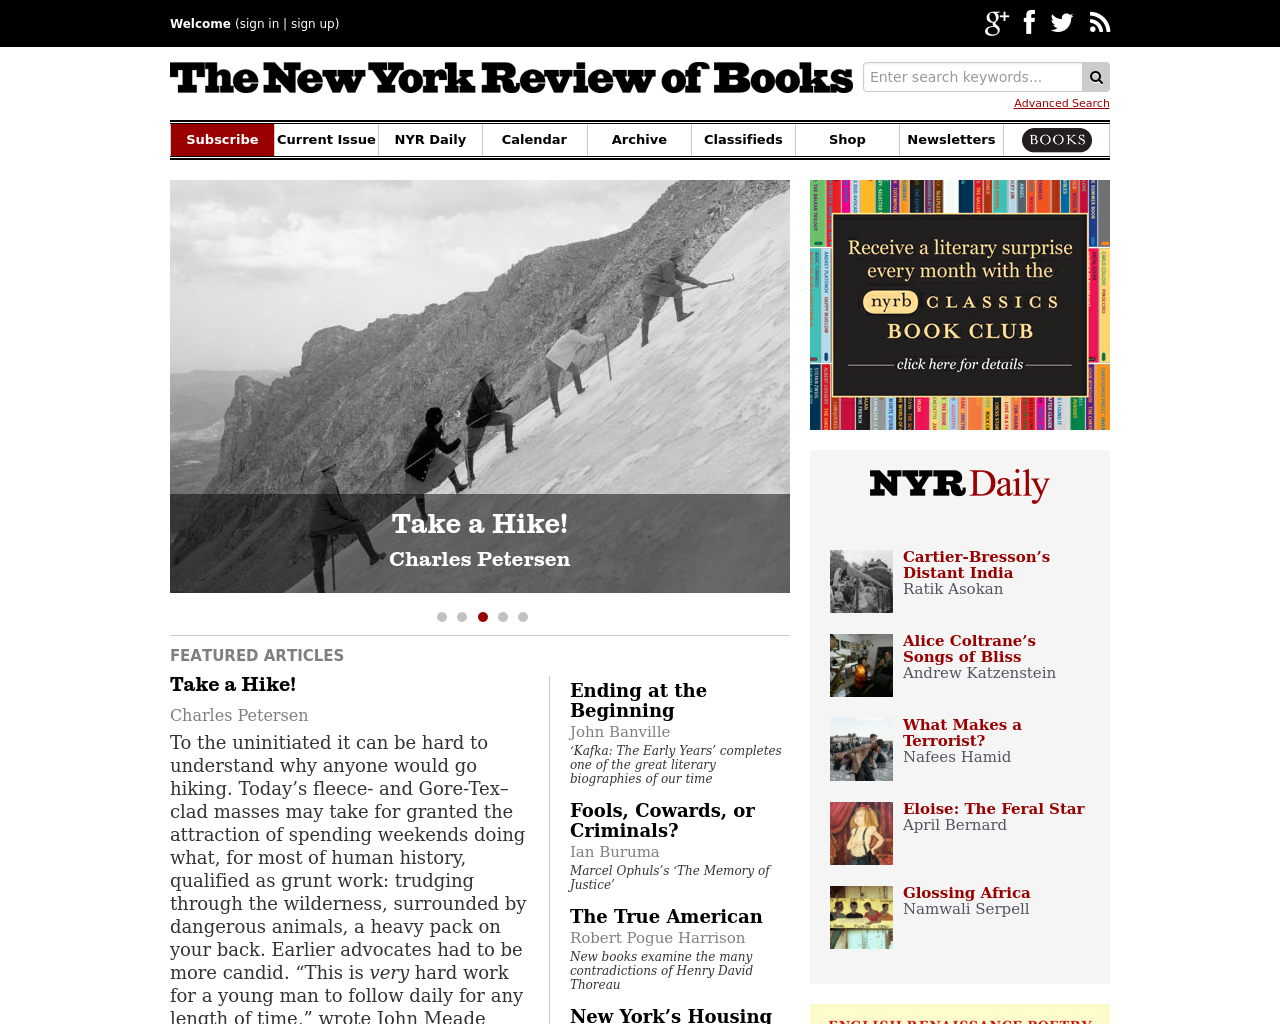 The-New-York-Review-Of-Books-Advertising-Reviews-Pricing